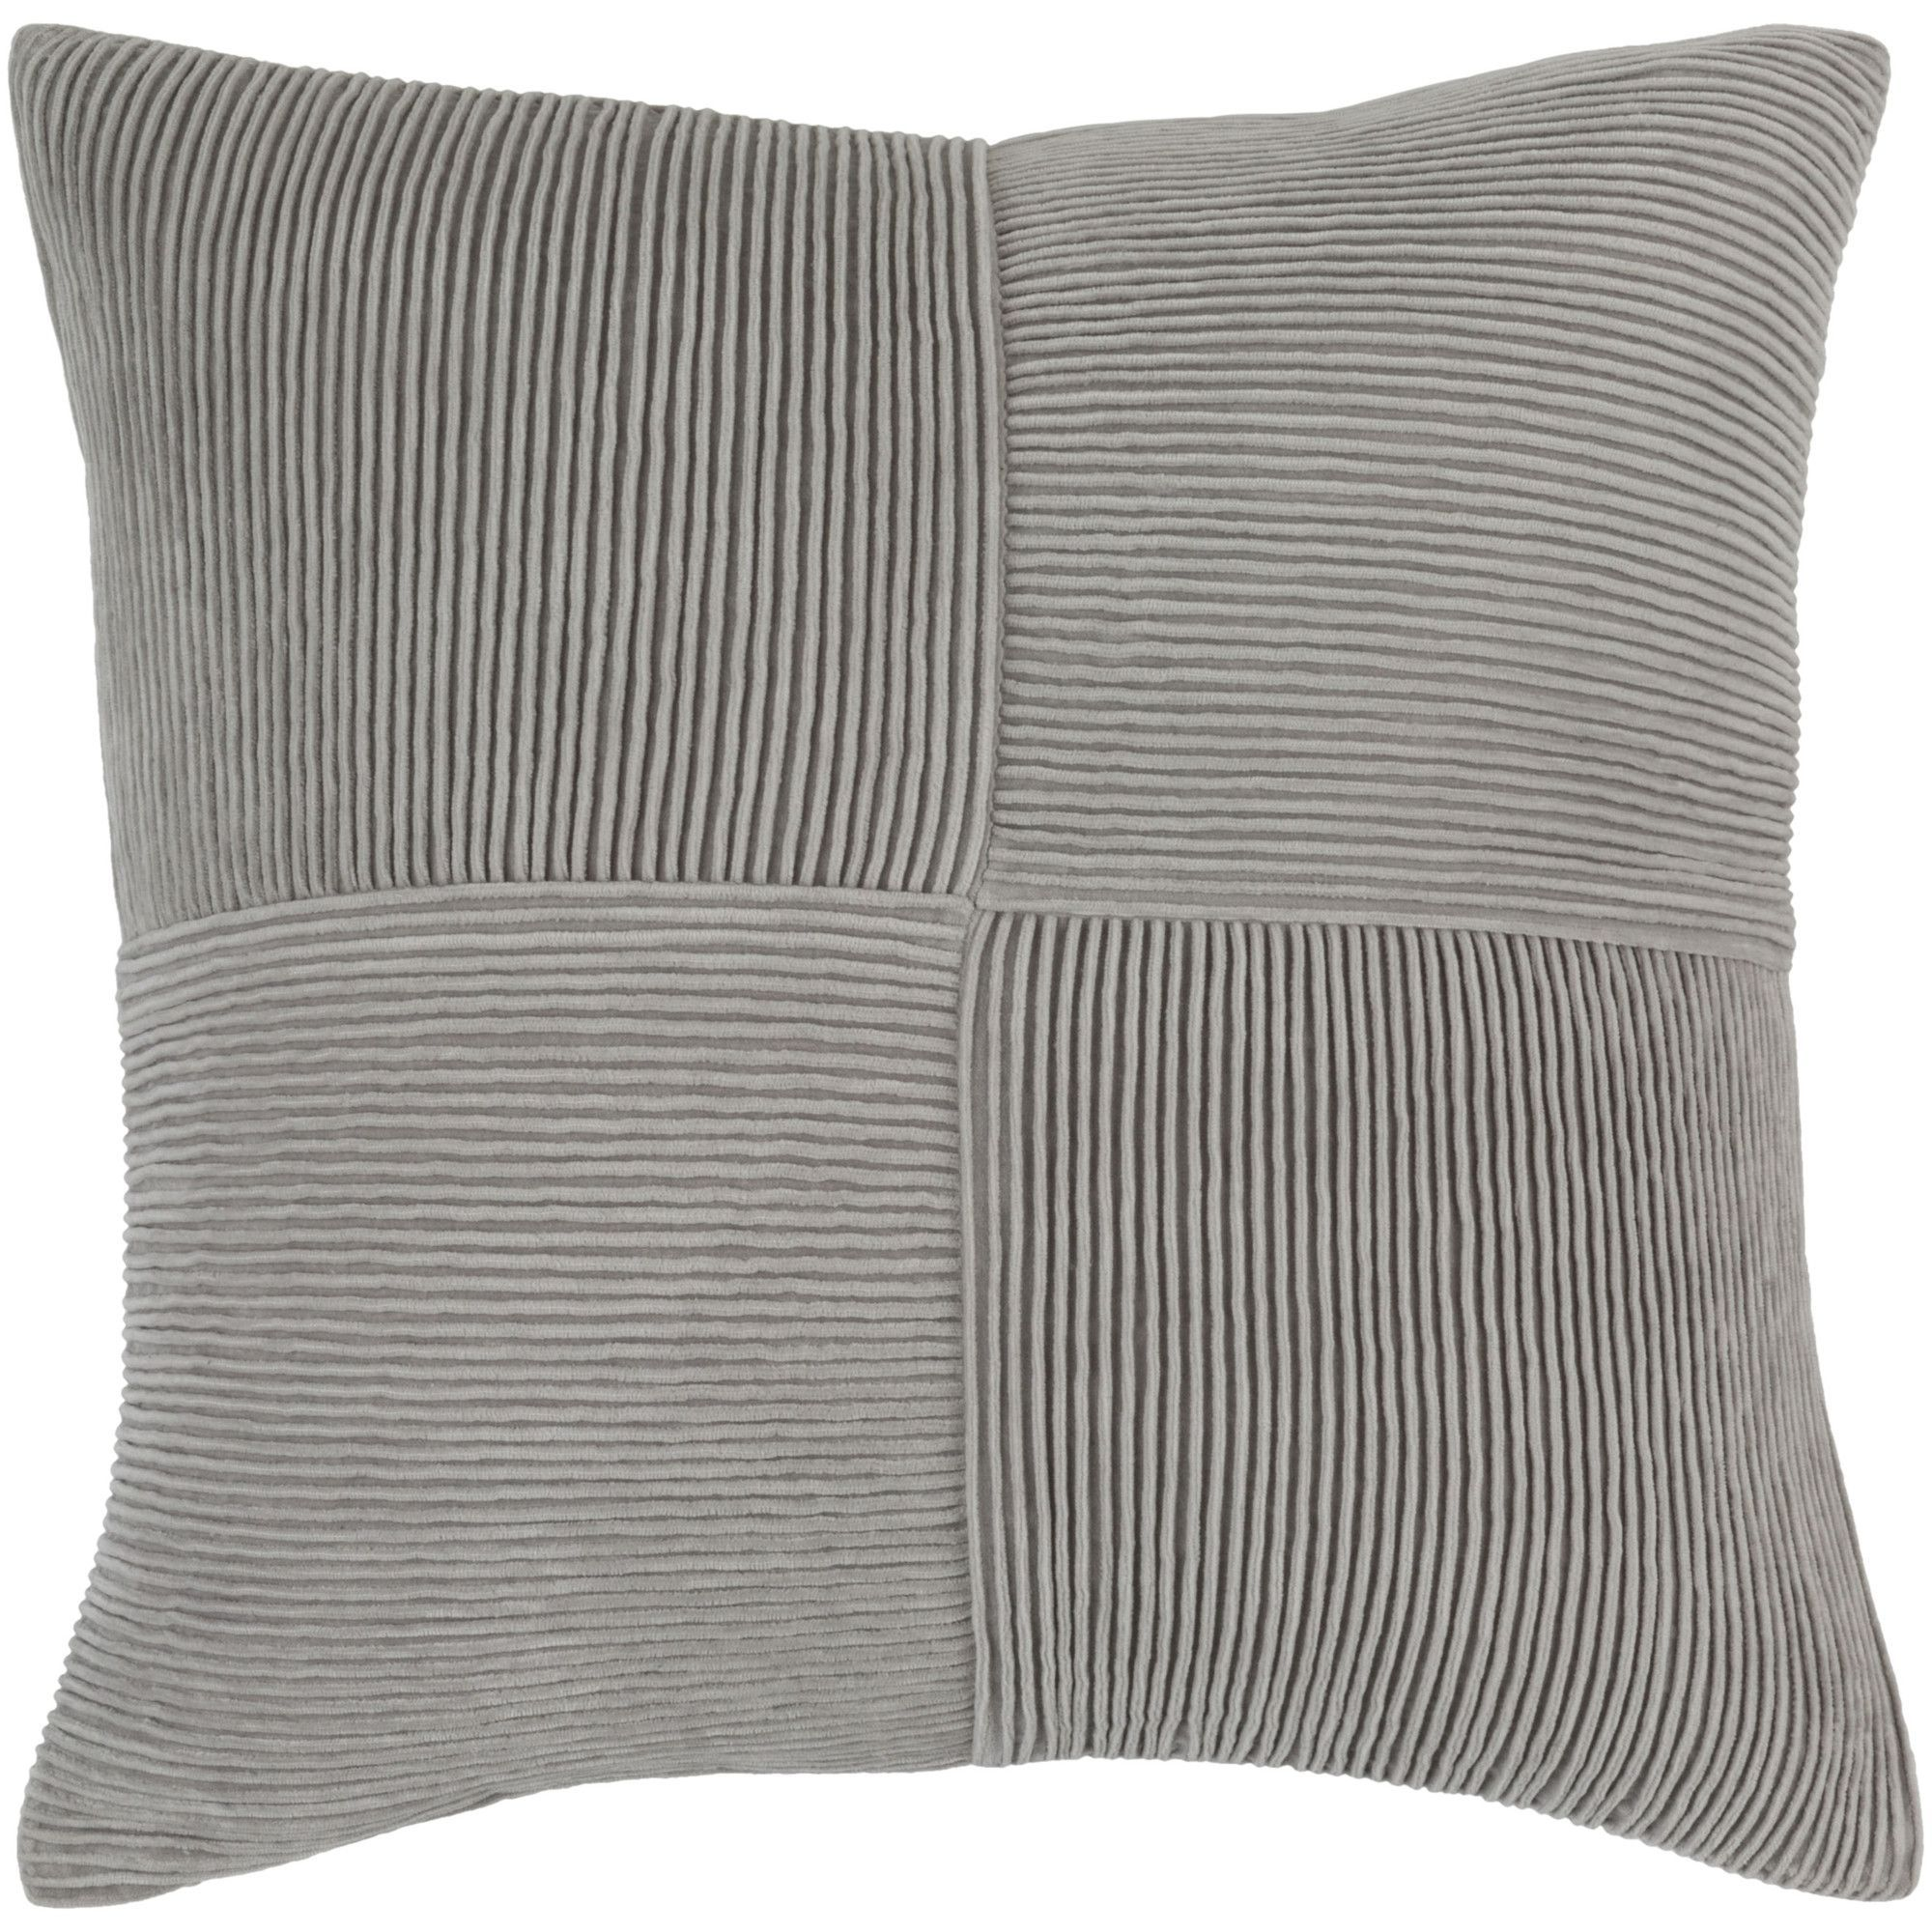 Bellevue cotton throw pillow cover products pinterest